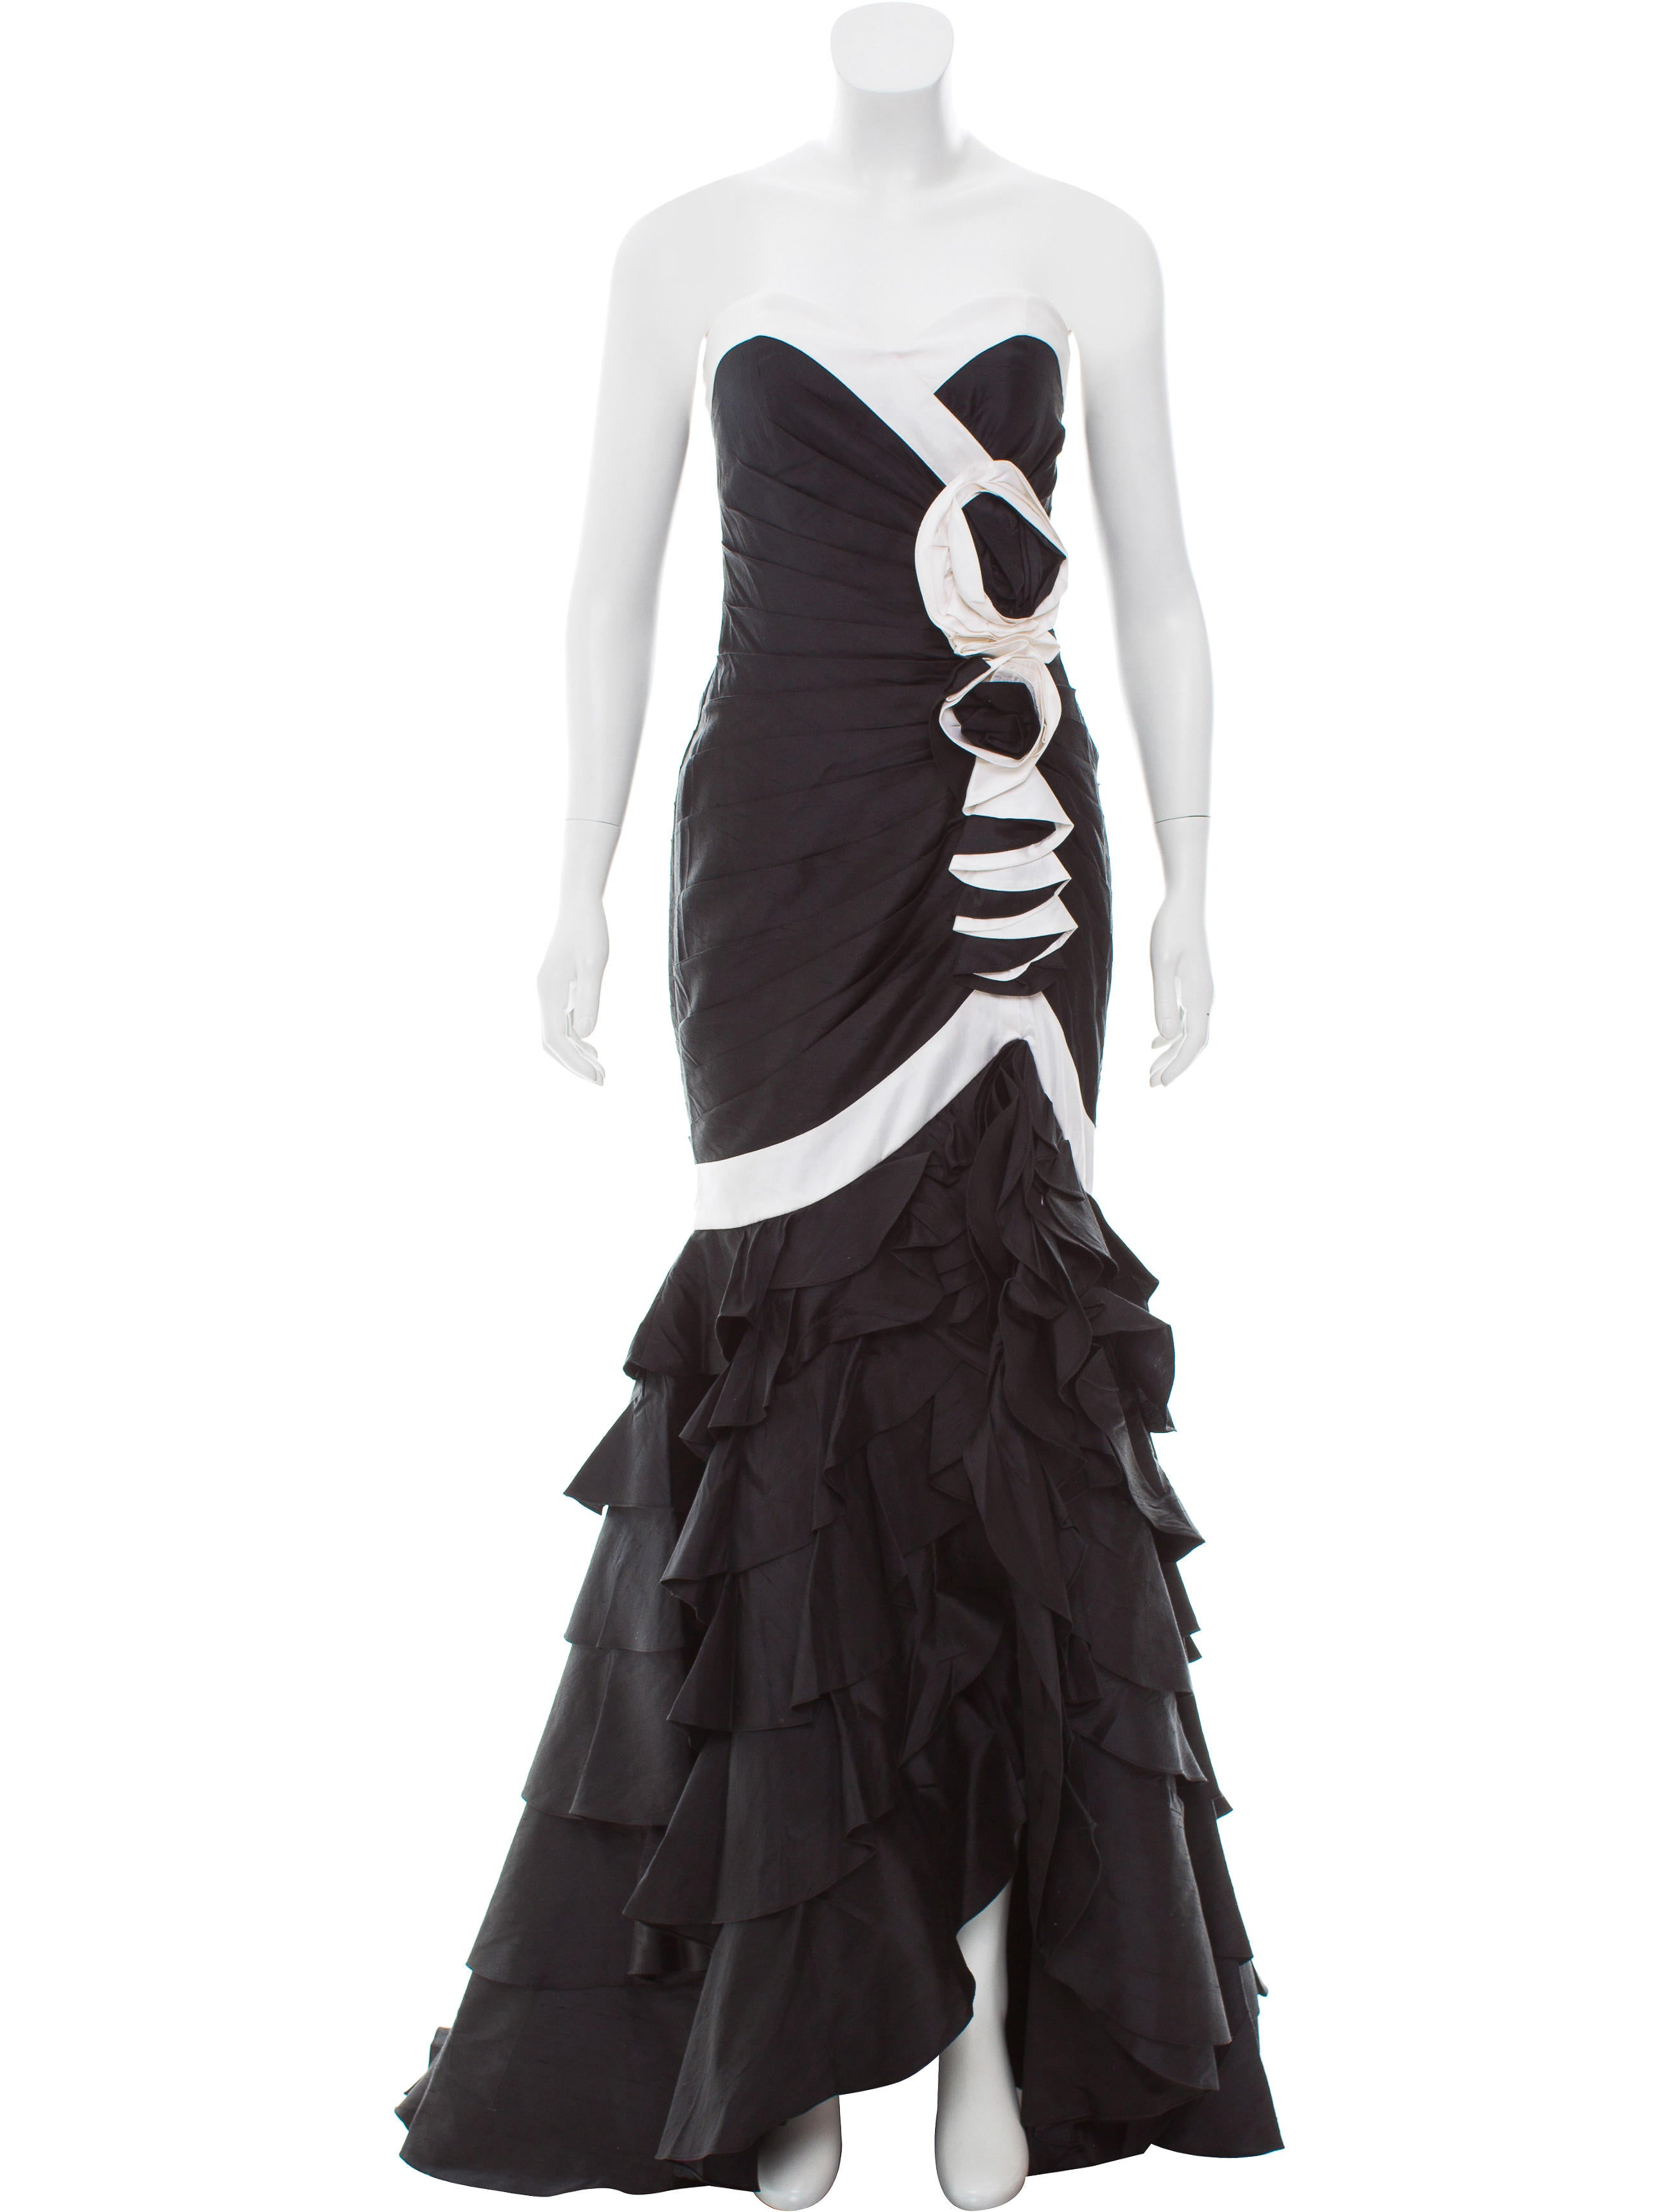 Jovani Strapless Evening Gown w/ Tags - Clothing - WJOVI20137 | The ...